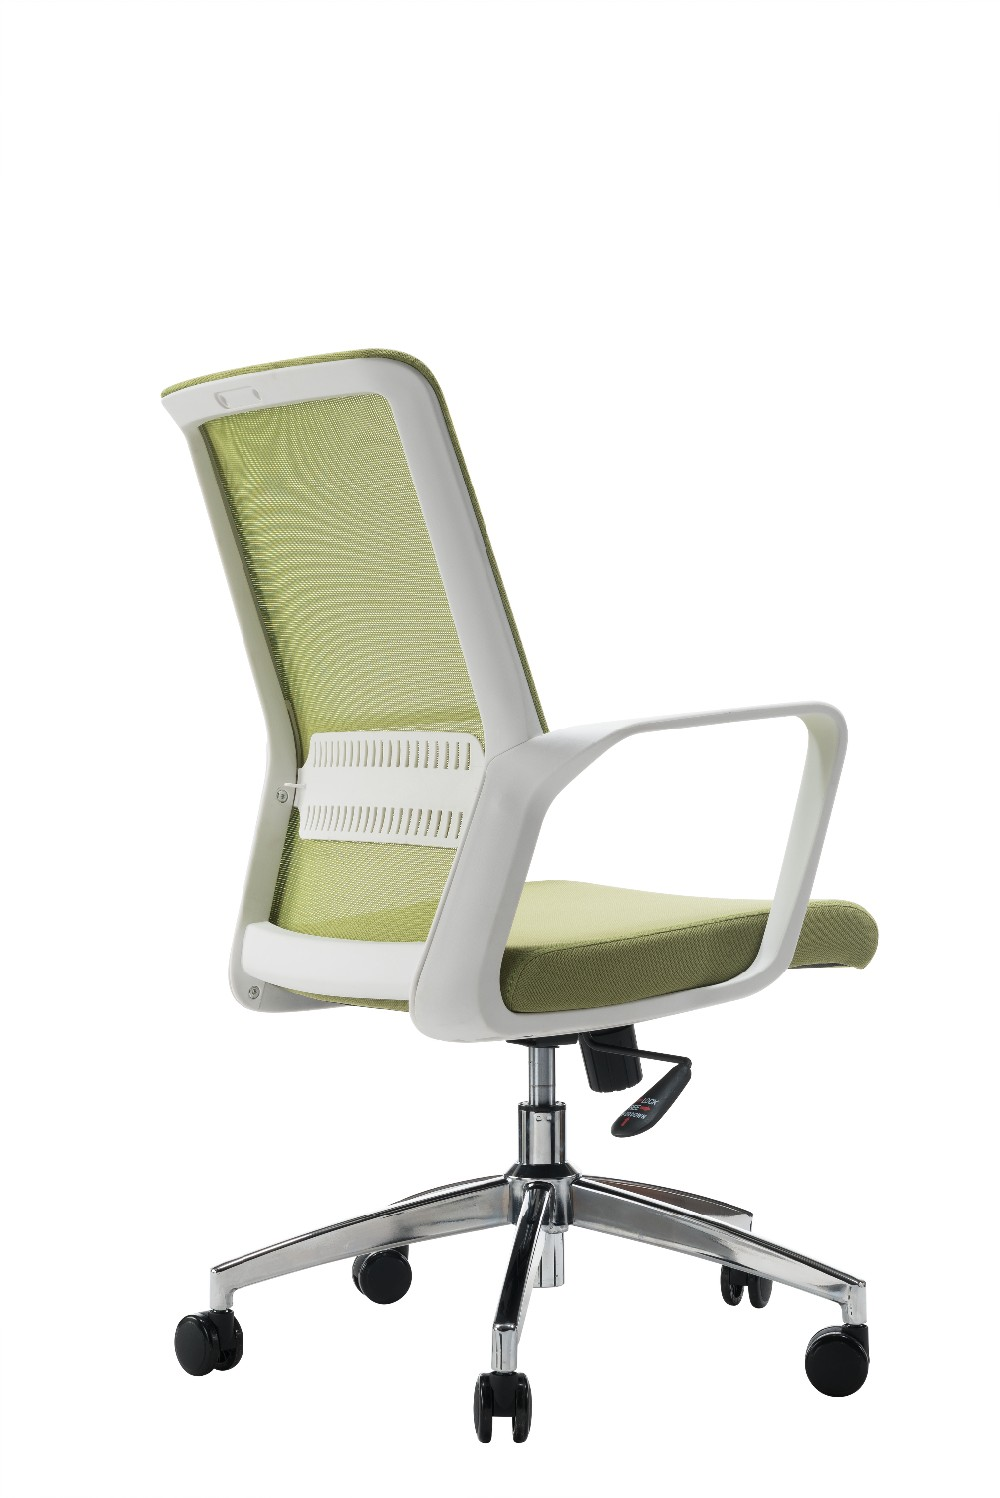 Durable Mesh Swivel Chairs Mesh Ergonomic Rotating Office Chair Wheel Base